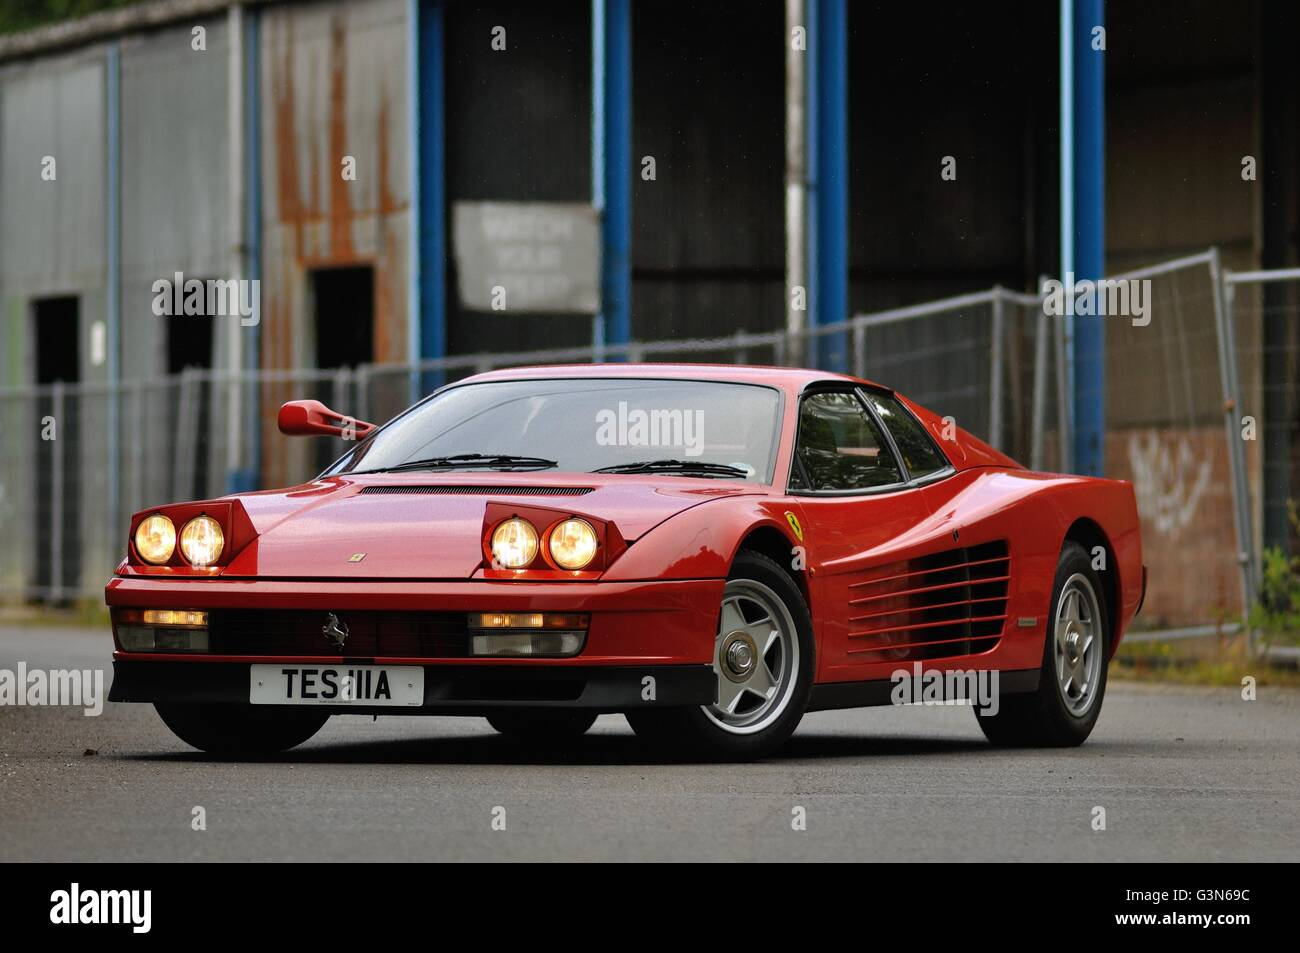 An Eighties Ferrari Testarossa stands with its headlights on in a disused industrial complex. - Stock Image